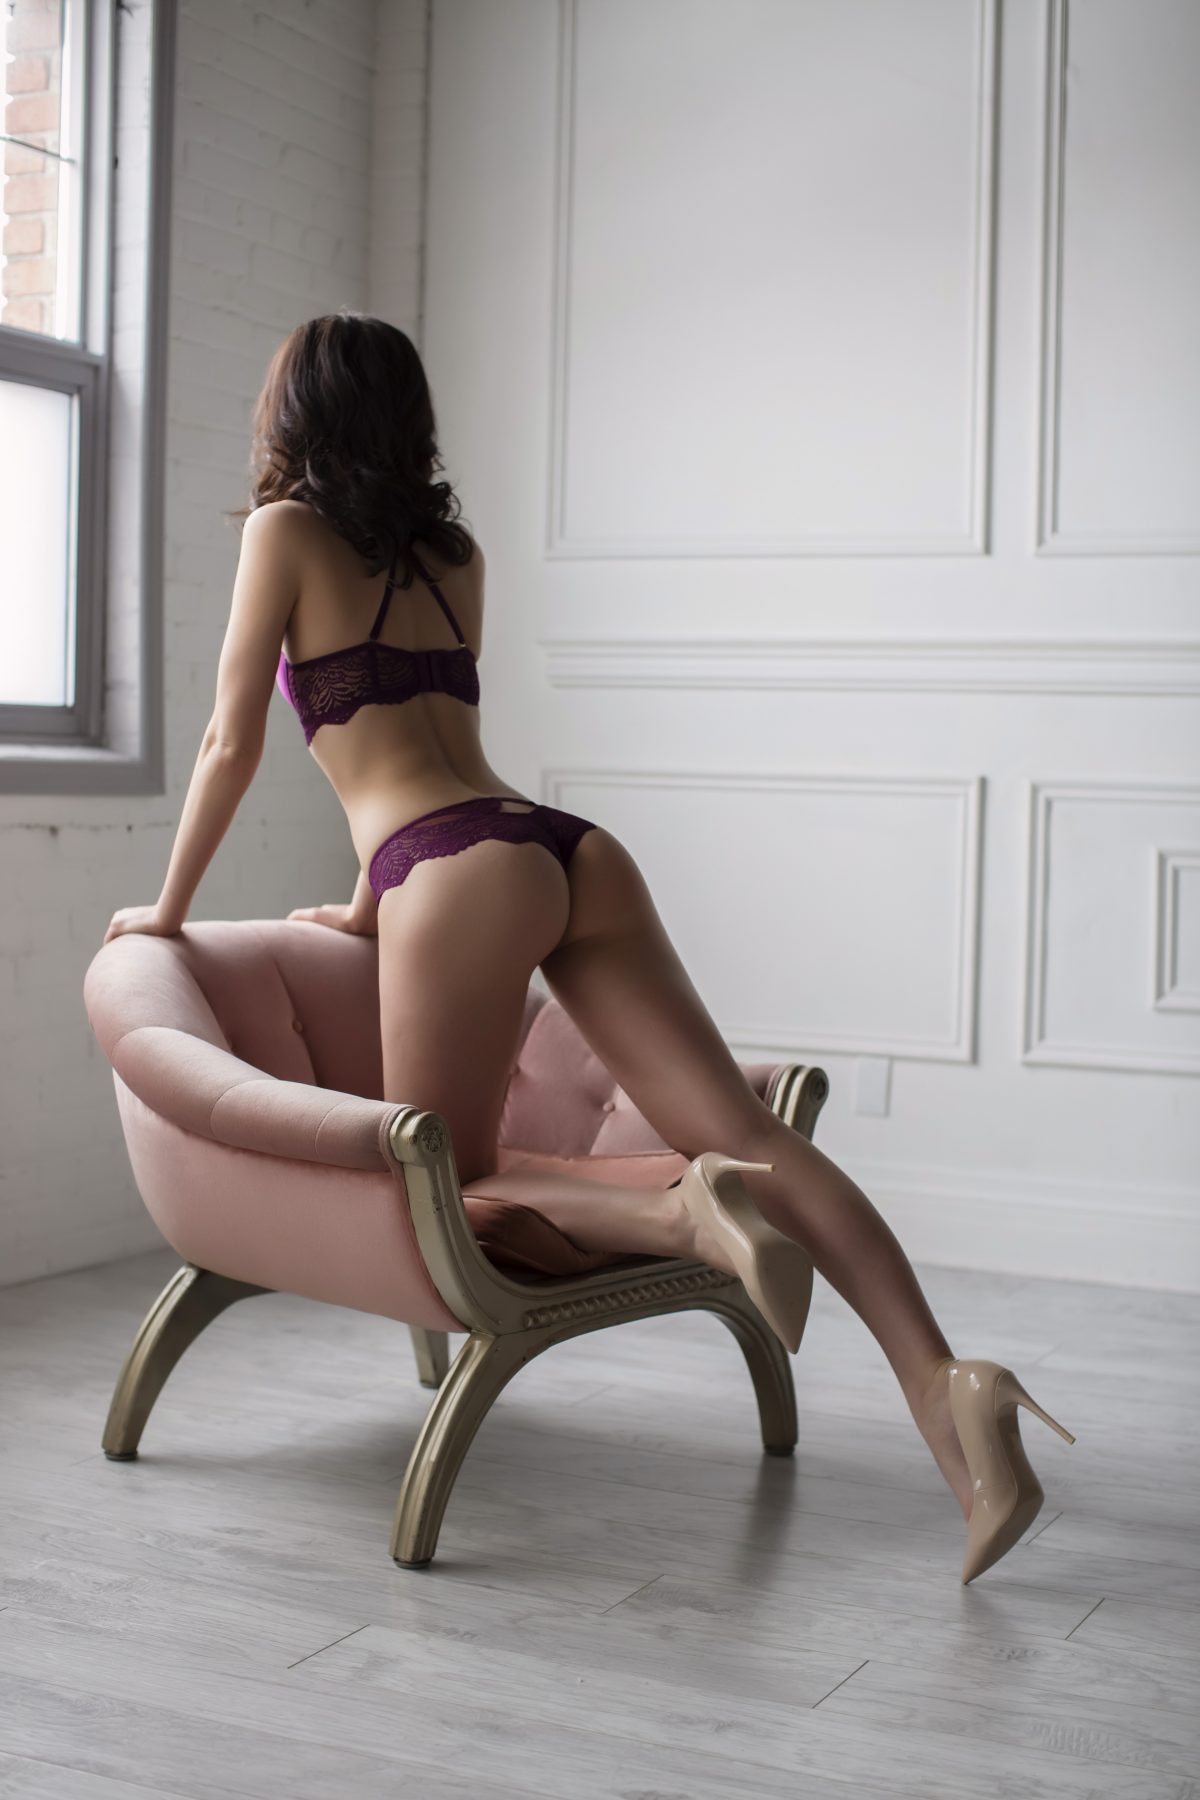 Toronto escorts companion upscale Quinn Interests Non-smoking Age Mature Figure Slender Tall Breasts Natural Hair Brunette Ethnicity European Tattoos Small